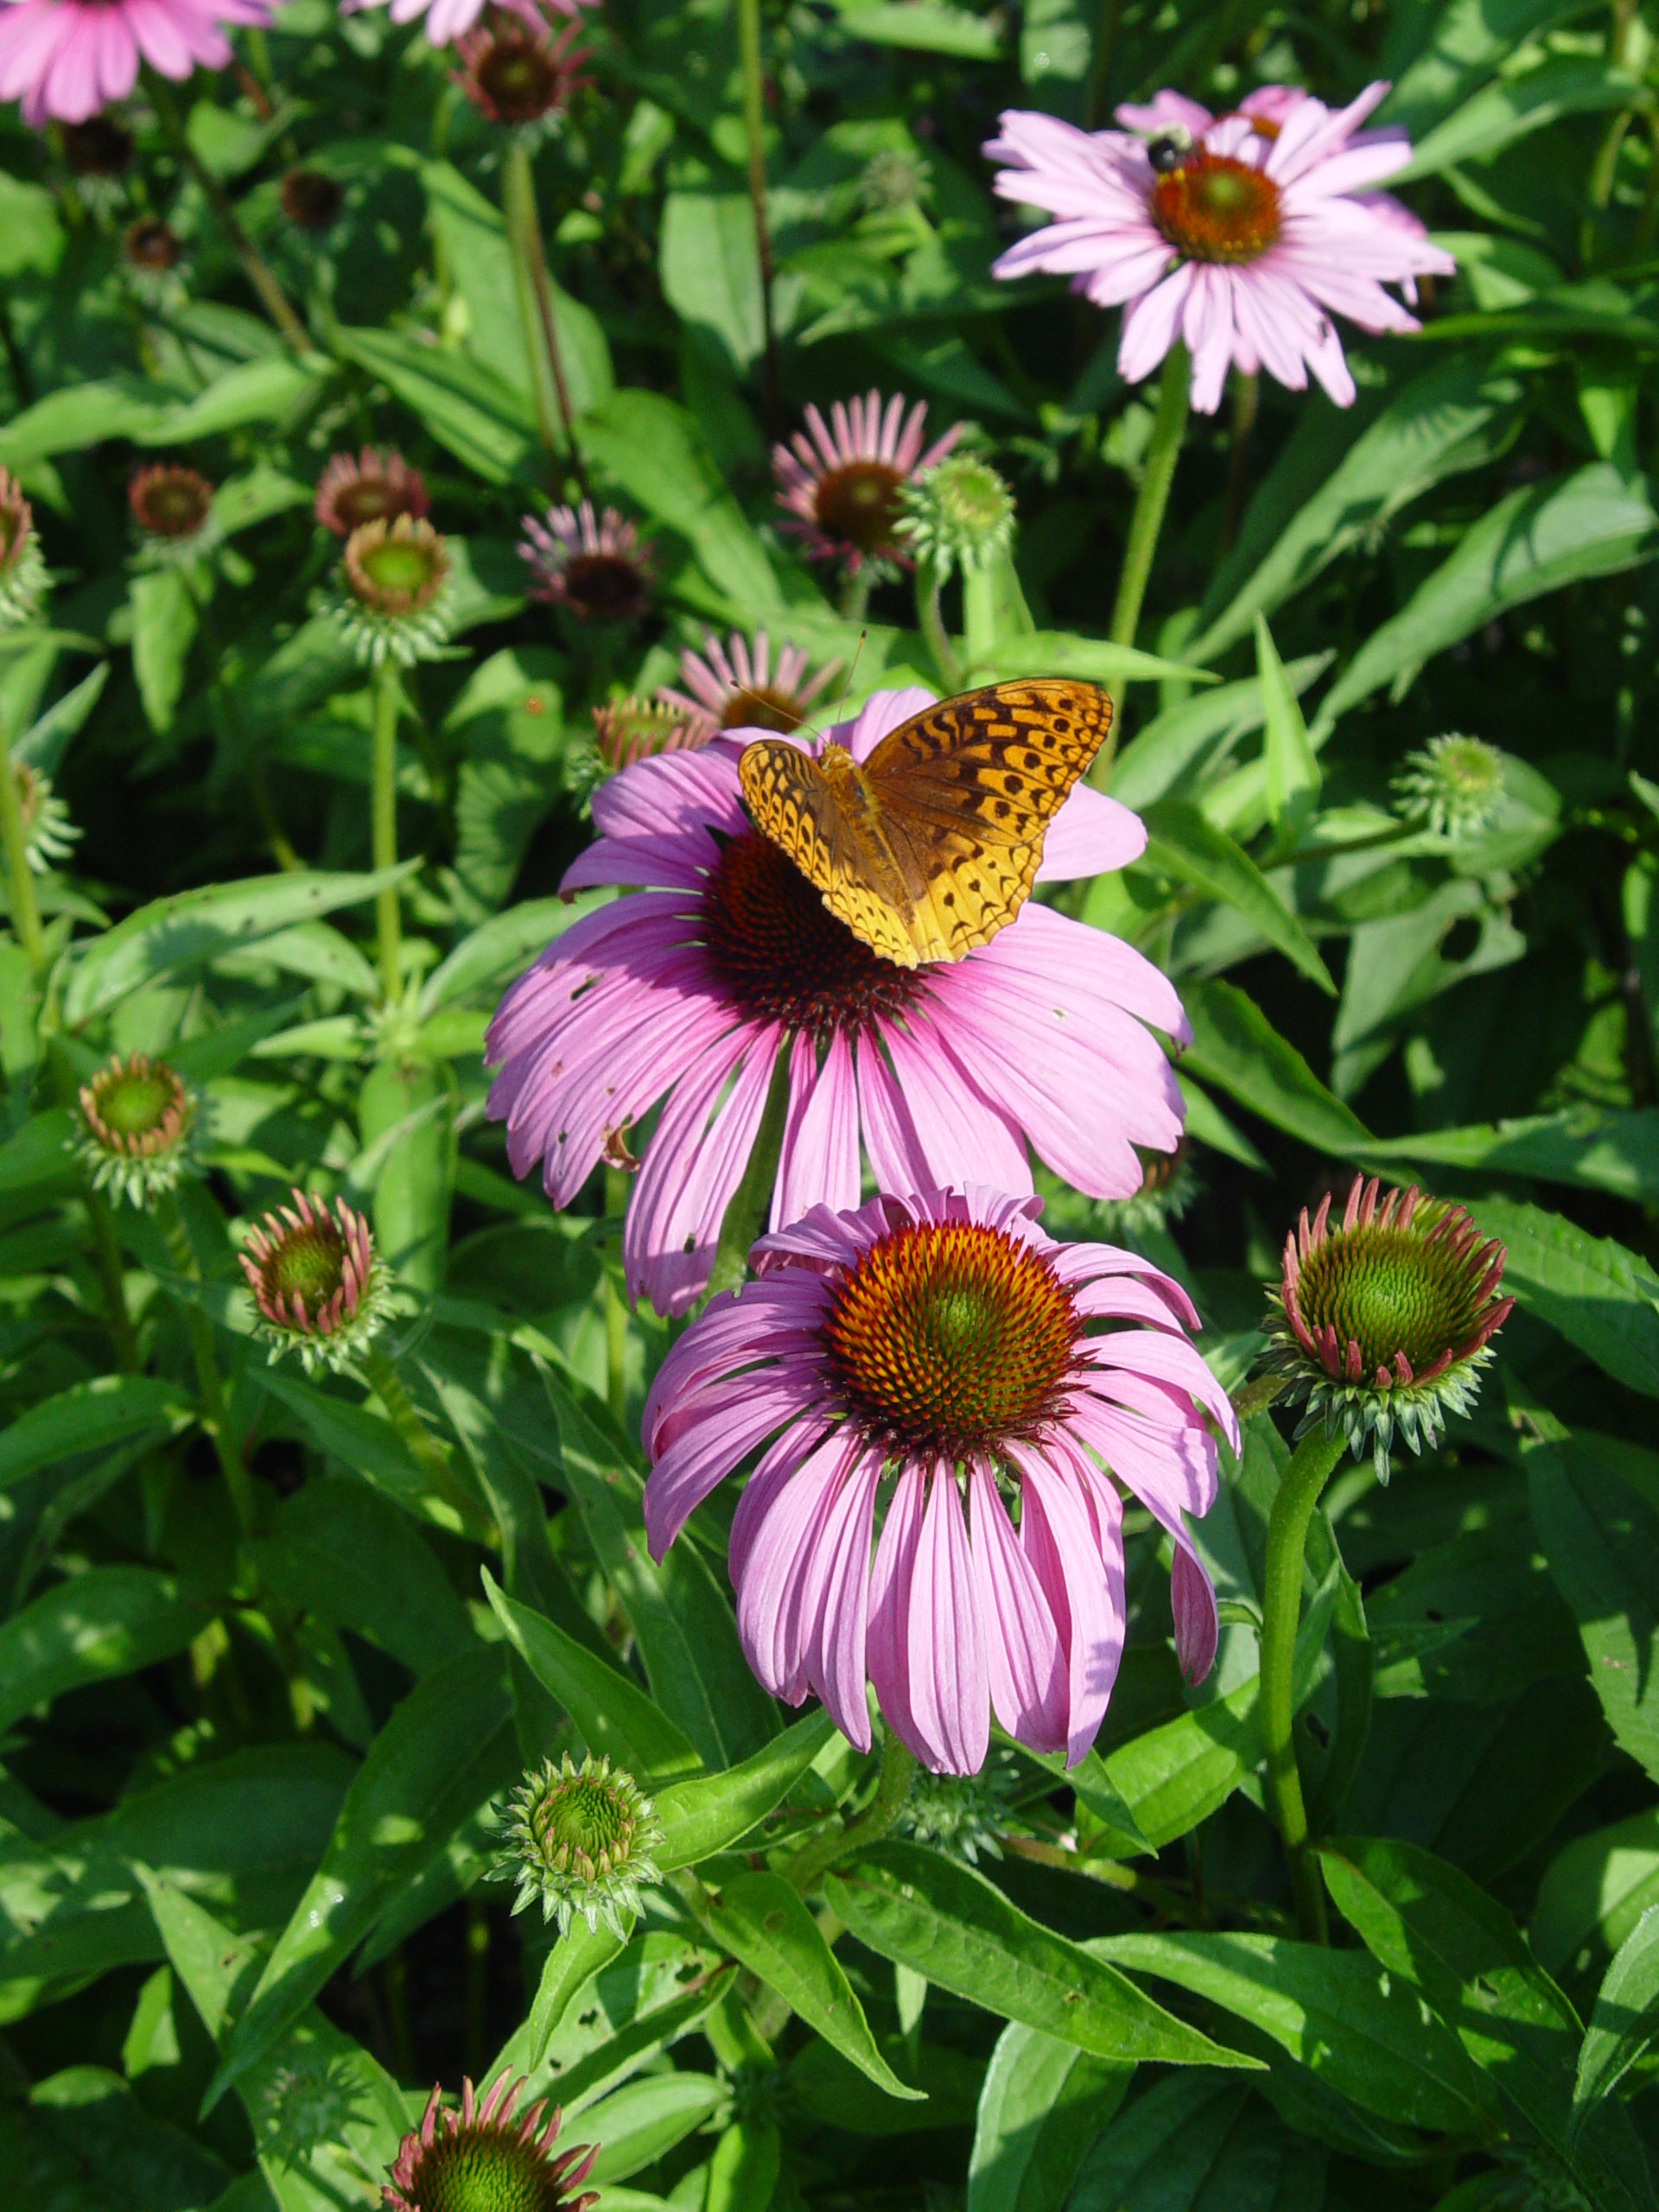 native pennsylvania plants coneflower fritillary central south garden butterfly feasting feed ll come them they georgeweigel